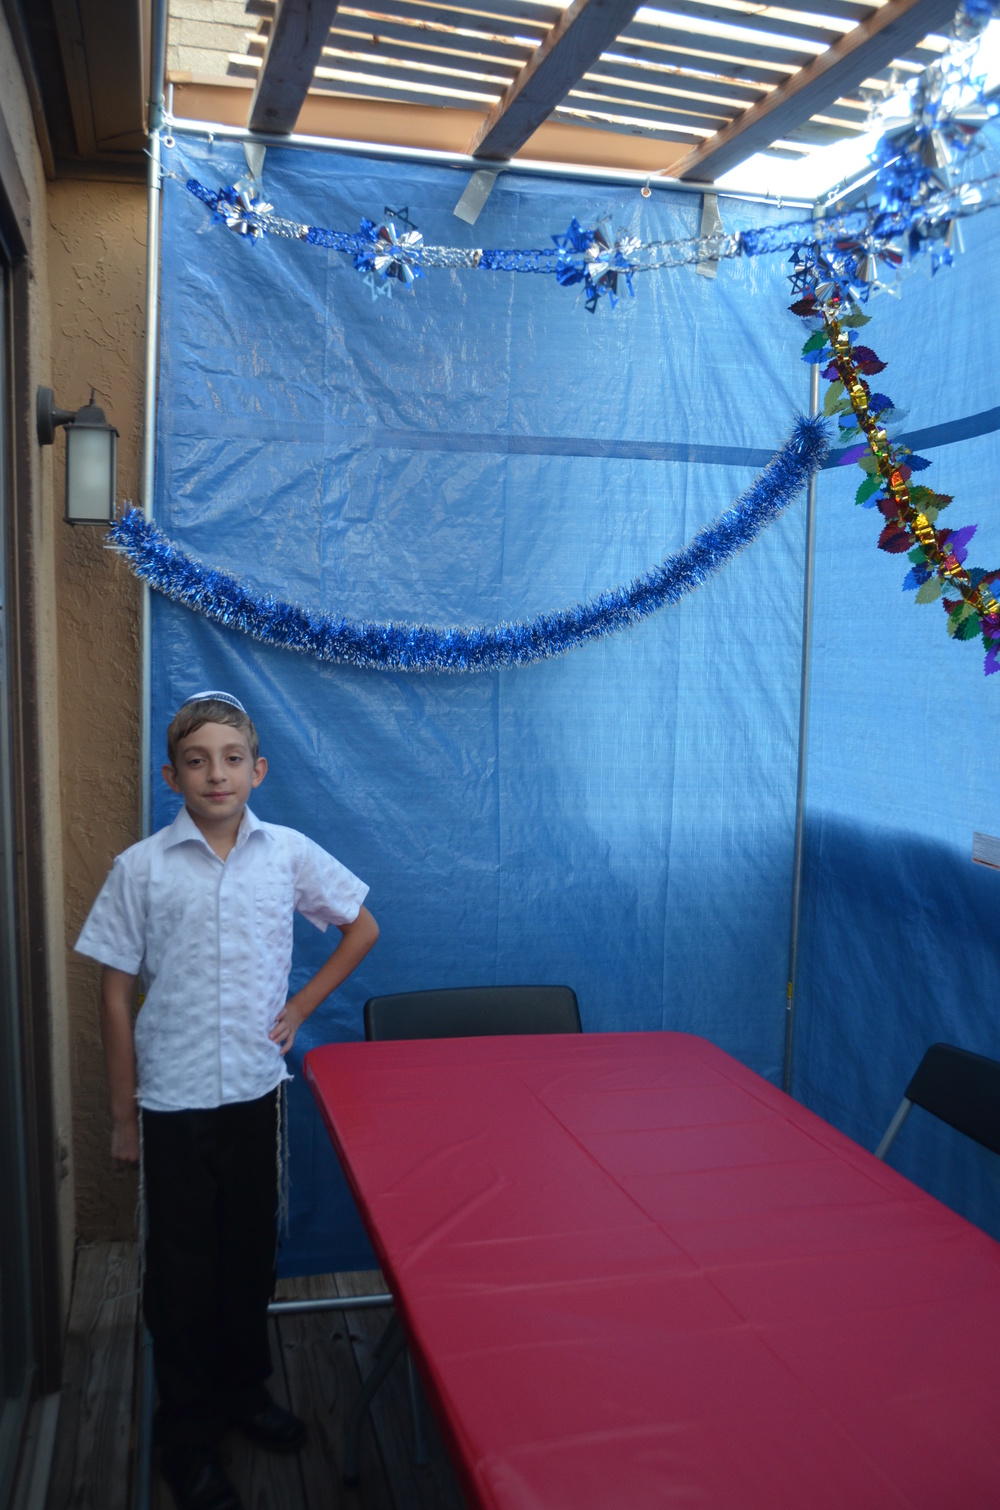 Click photo to download. Caption: Shai-El Luger (pictured) and his single mother always wanted a sukkah of their own, but could not afford one. Dr. Jay Robinow changed that last year when he bought and built the Luger household's first sukkah (pictured). Credit: Provided photo.